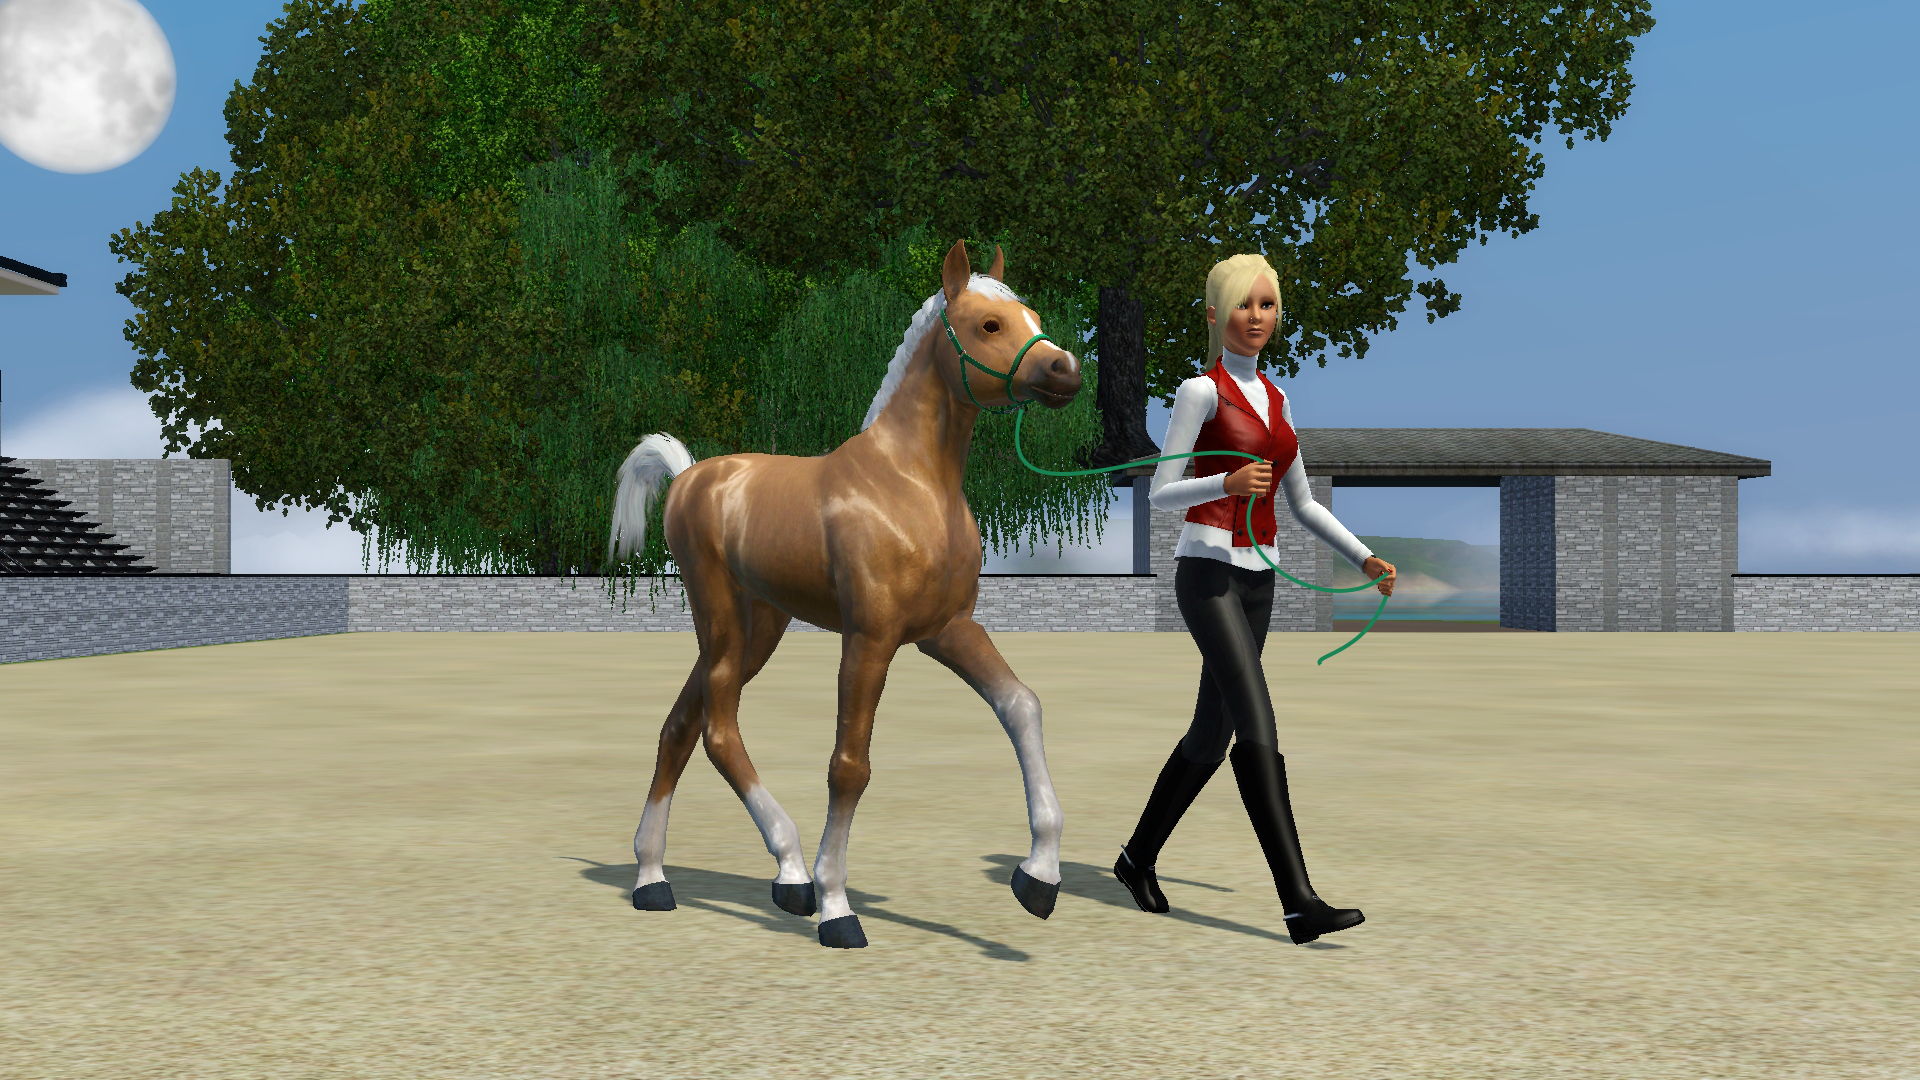 Great Wallpaper Horse Couple - tumblr_static_screenshot-344  Image_759952.jpg